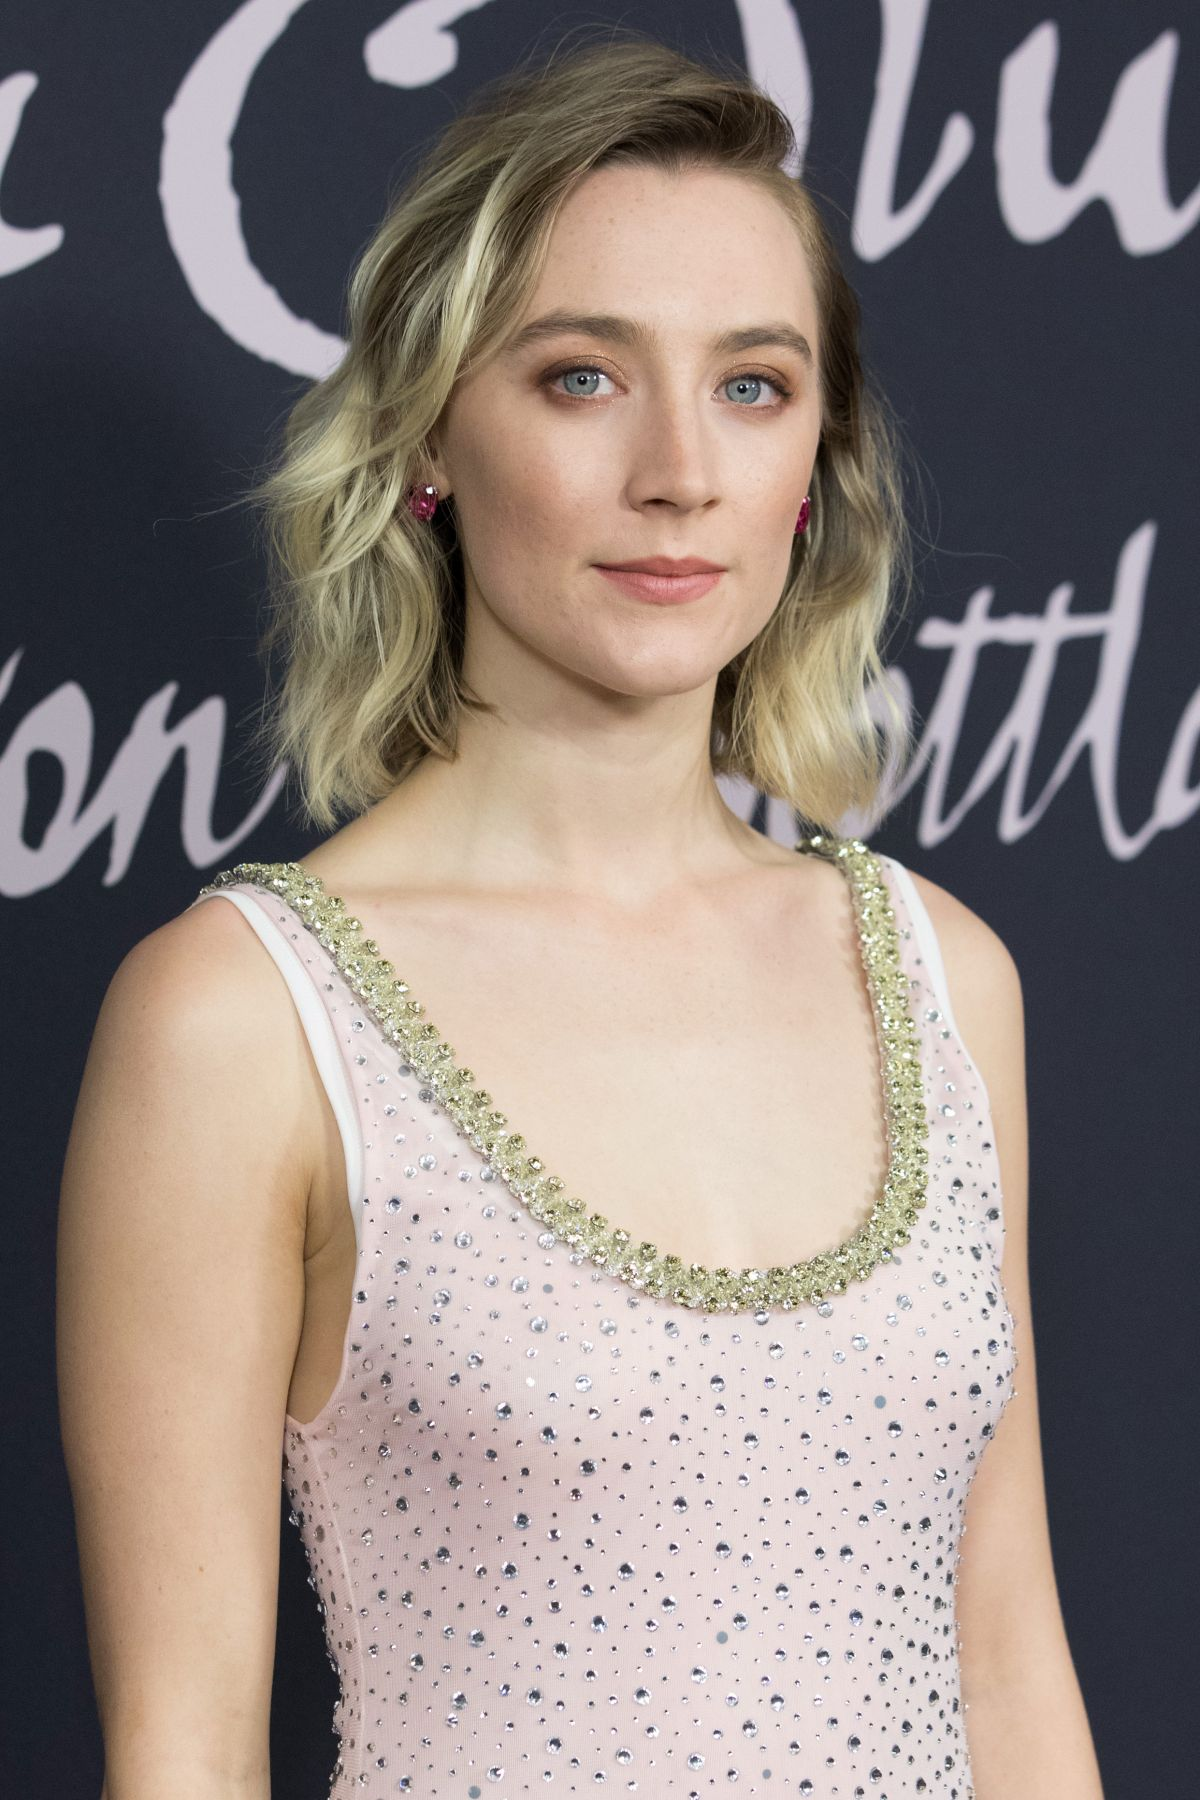 saoirse-ronan-at-mary-queen-of-scots-photocall-in-berlin-01-09-2019-6.jpg